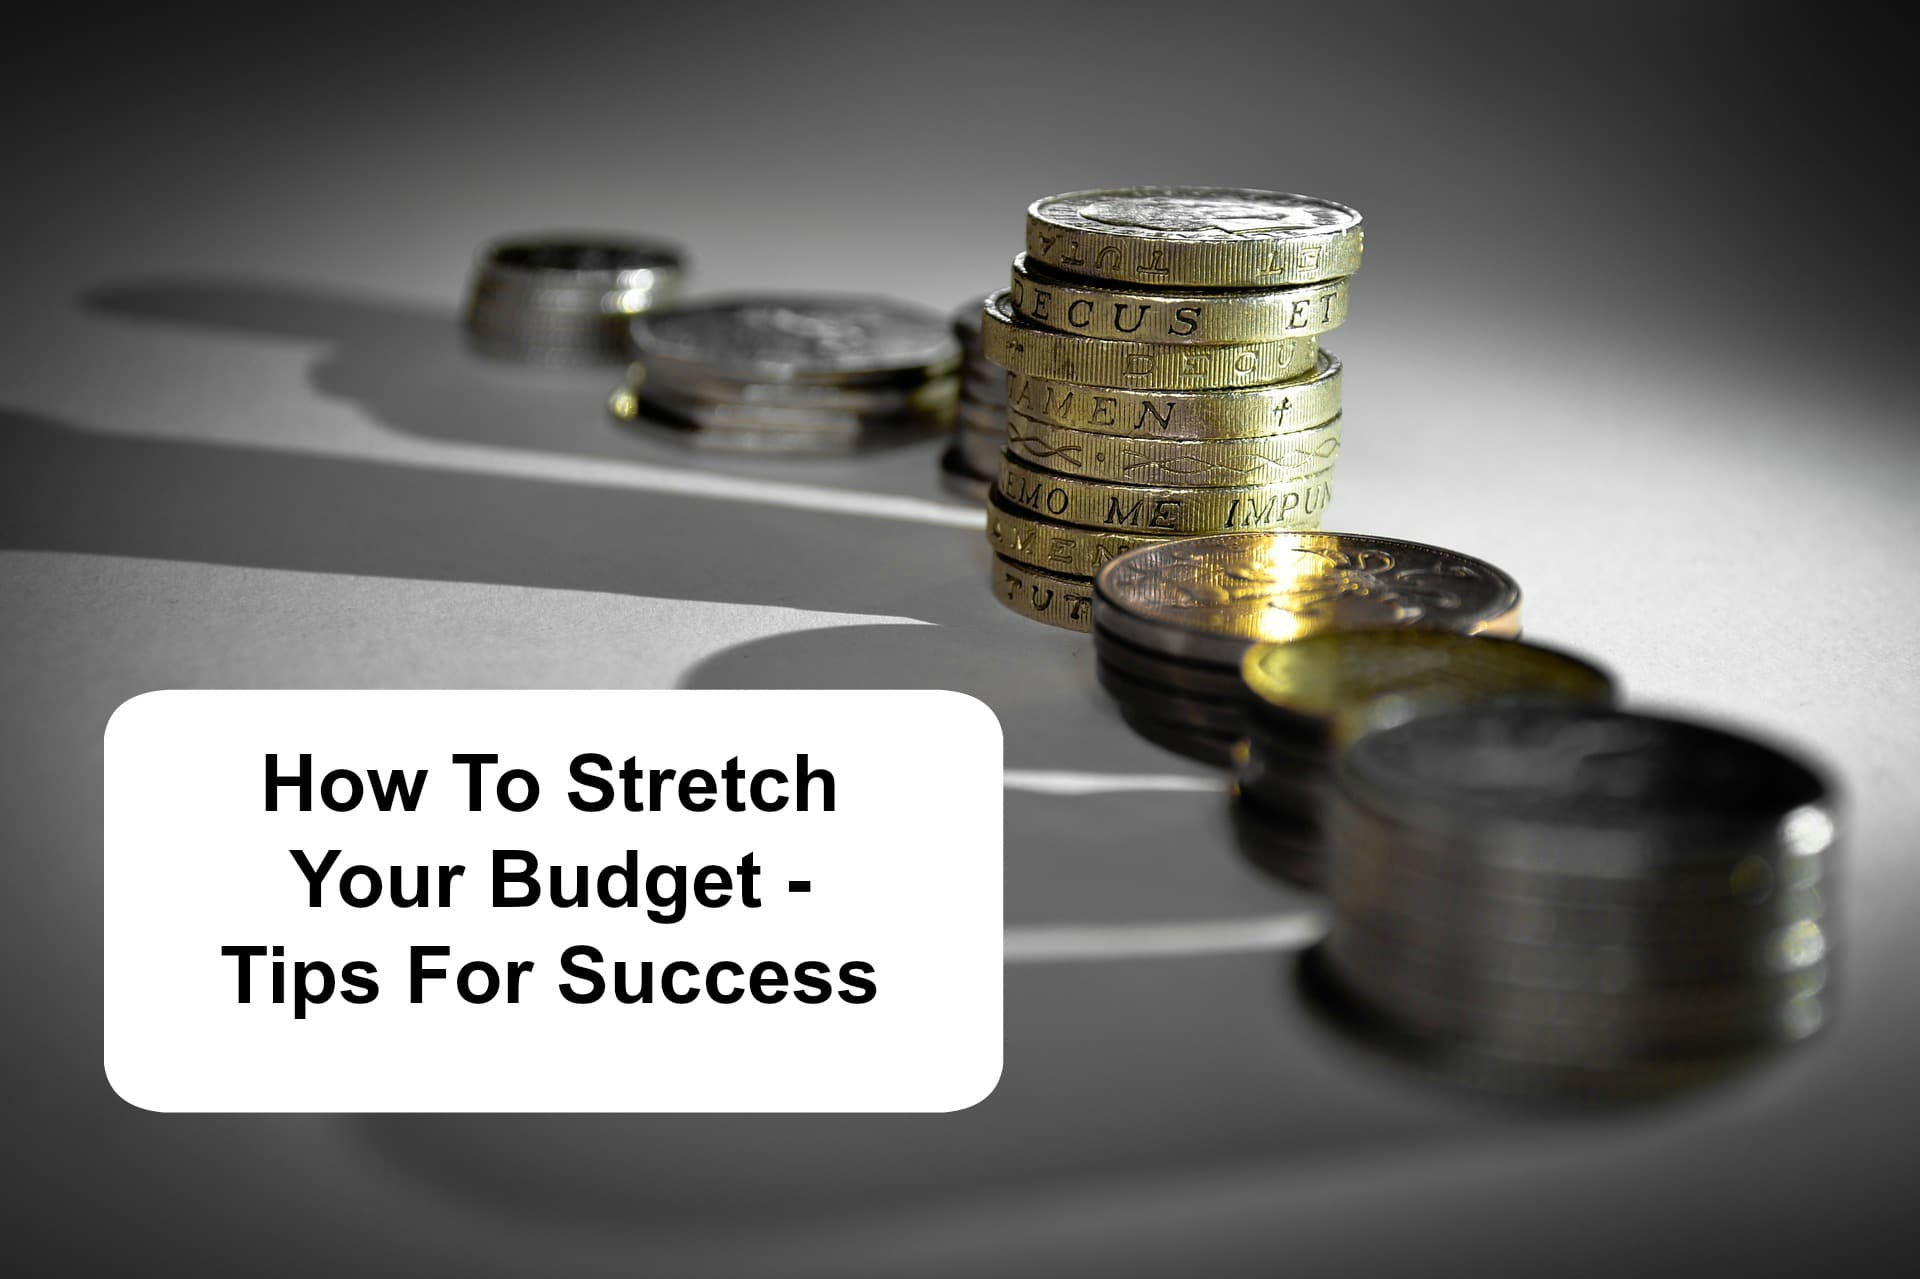 How to stretch your budget